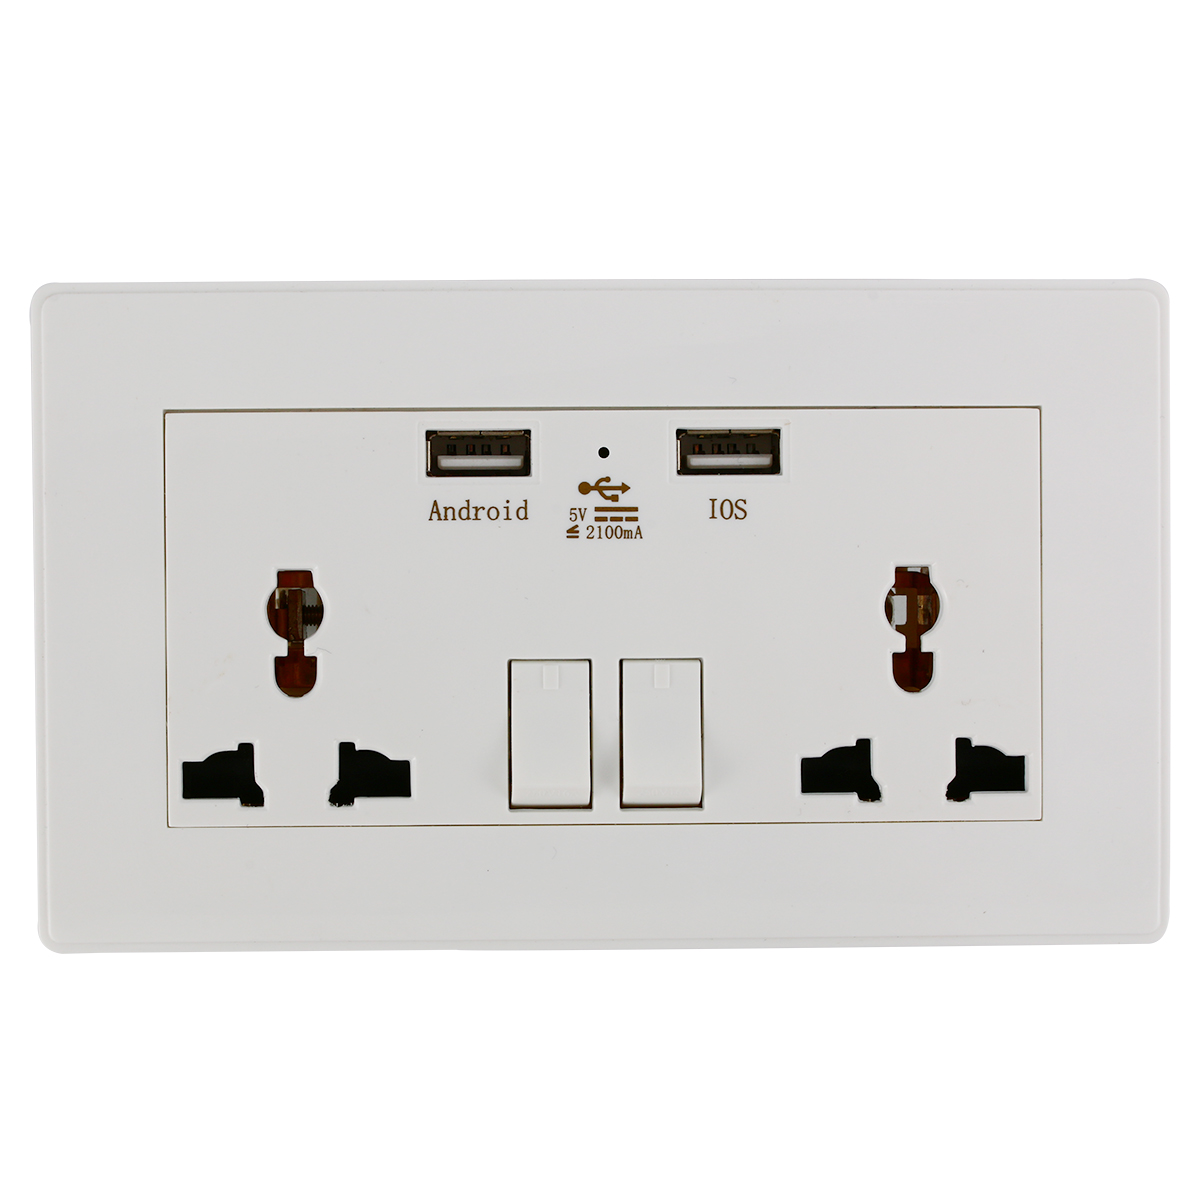 Universal Wall Socket Dual 2 USB Plug Switch Power Supply Plate 2100mA Charger Electric Outlet Adapter BI119 - Xcs Tech Co. Store store